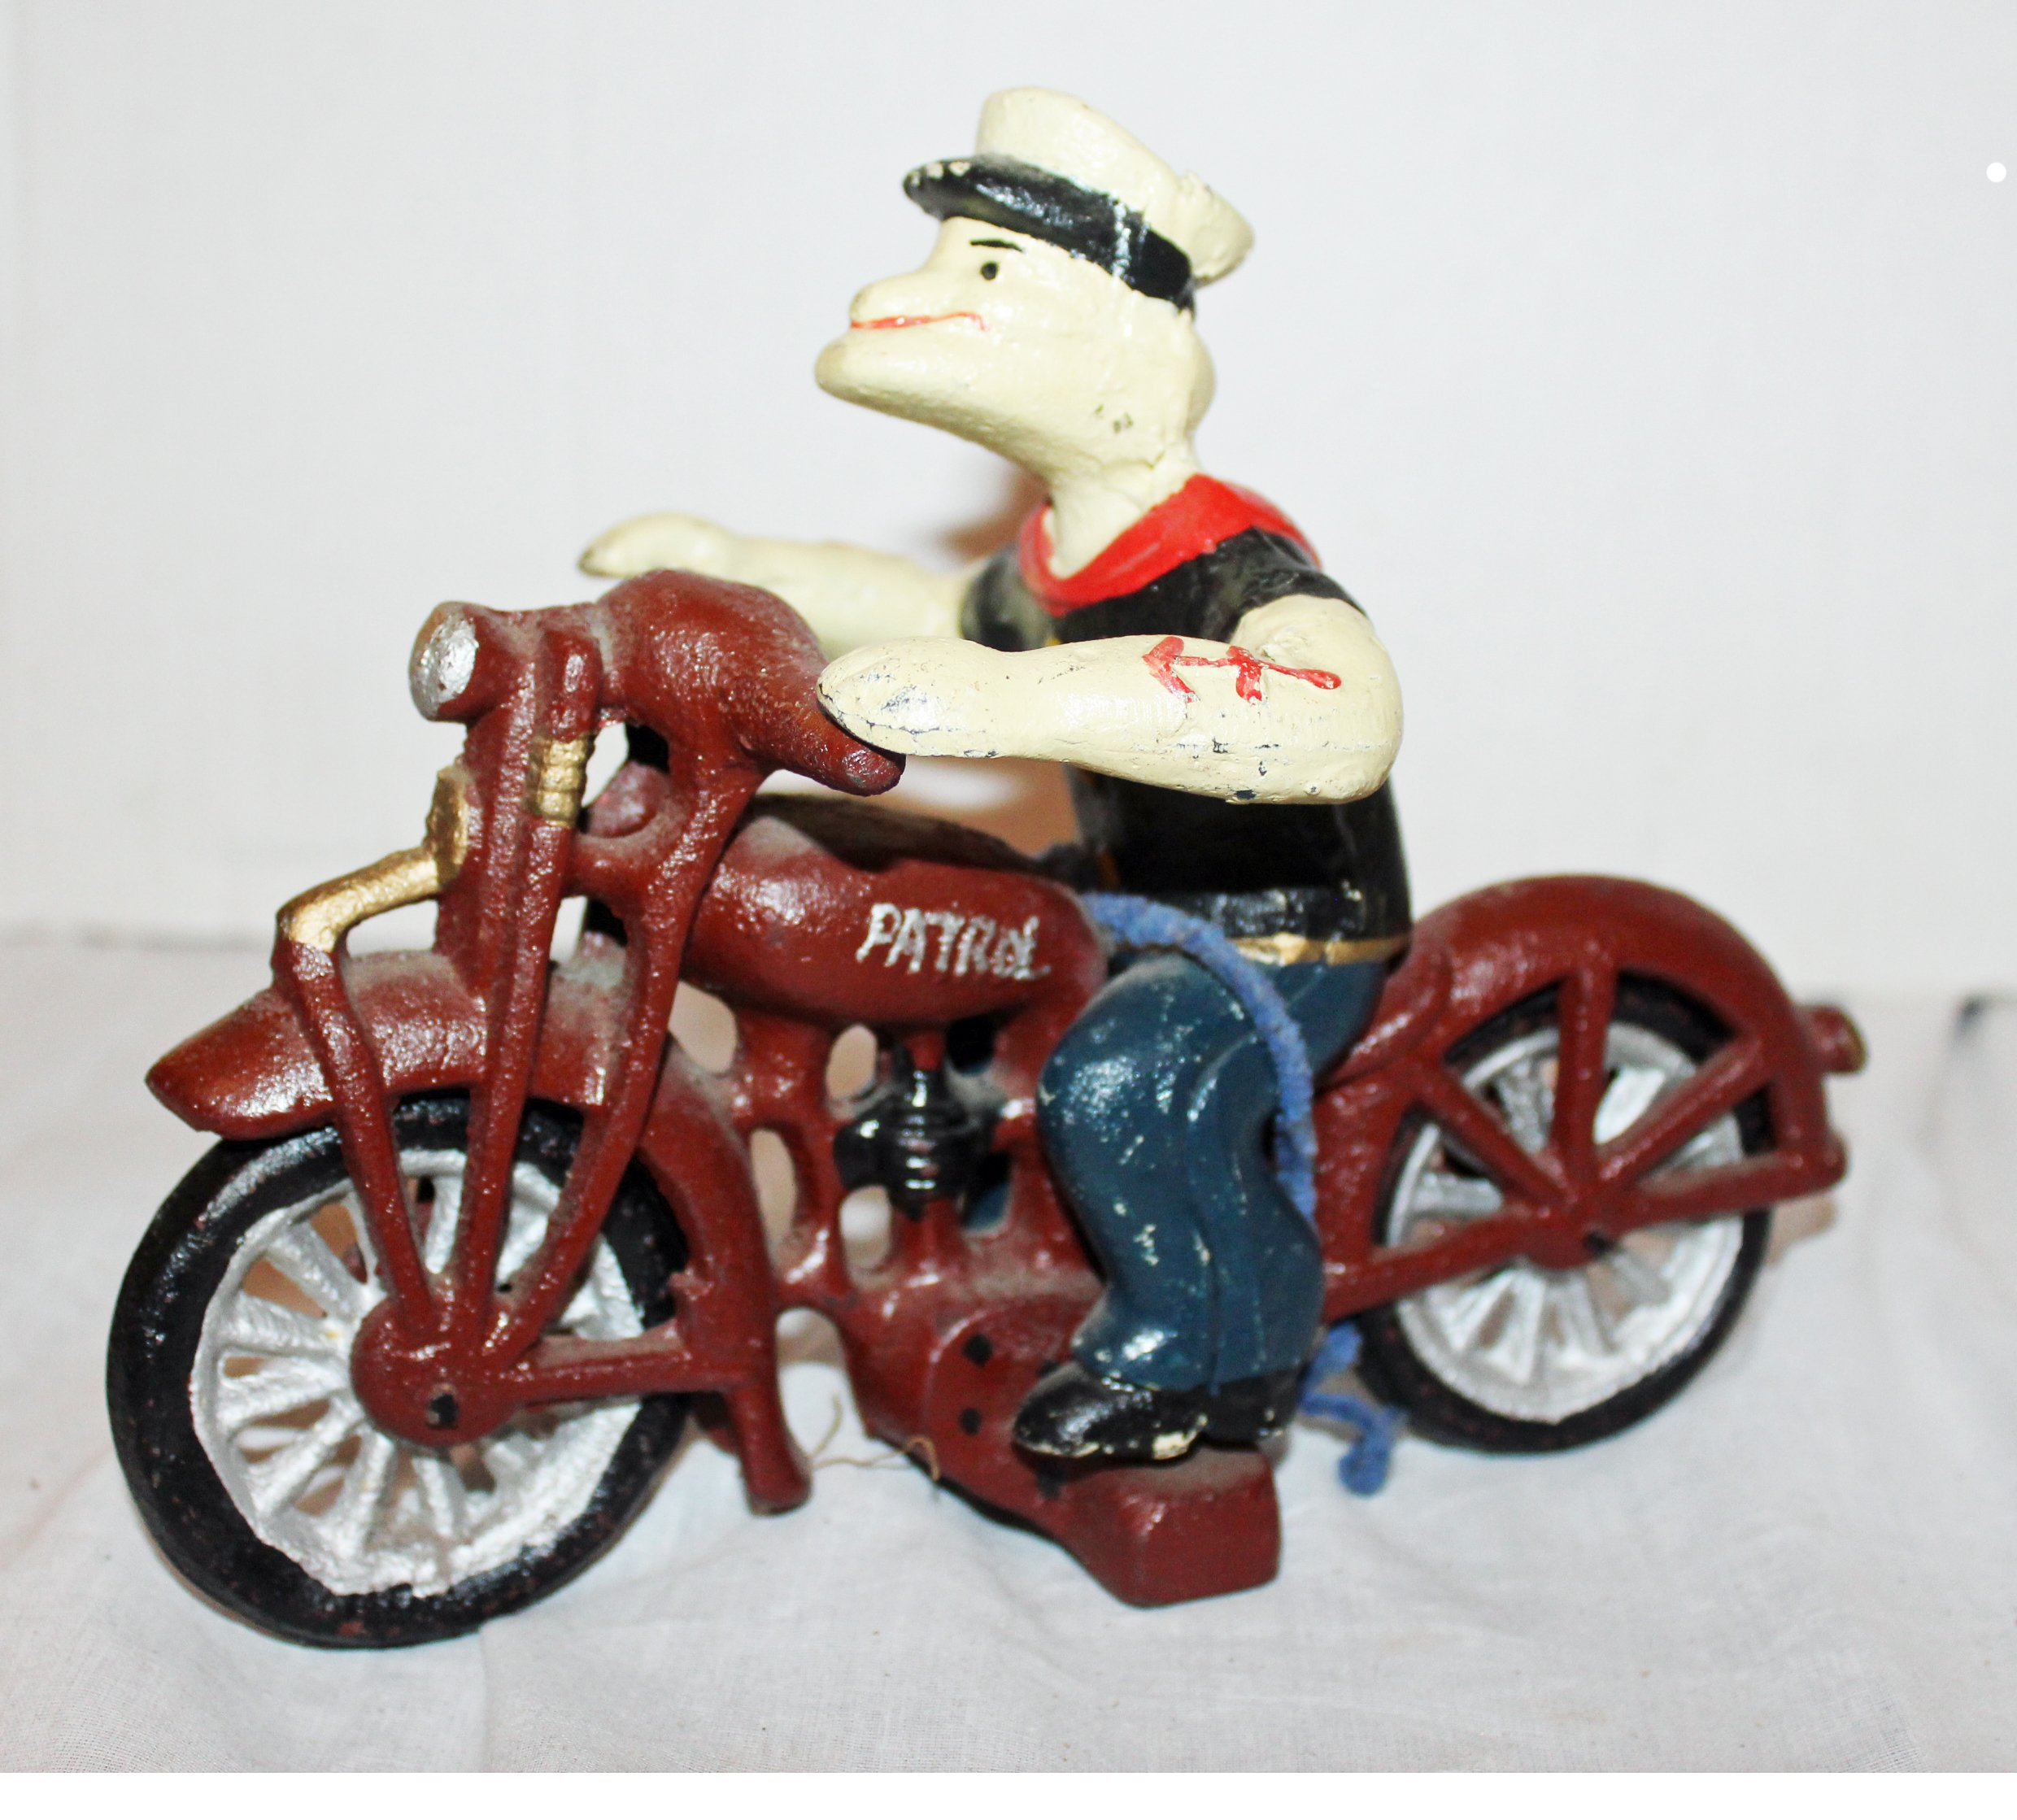 https://0201.nccdn.net/1_2/000/000/0fe/1f9/POPEYE-ON-MOTORCYCLE.jpg